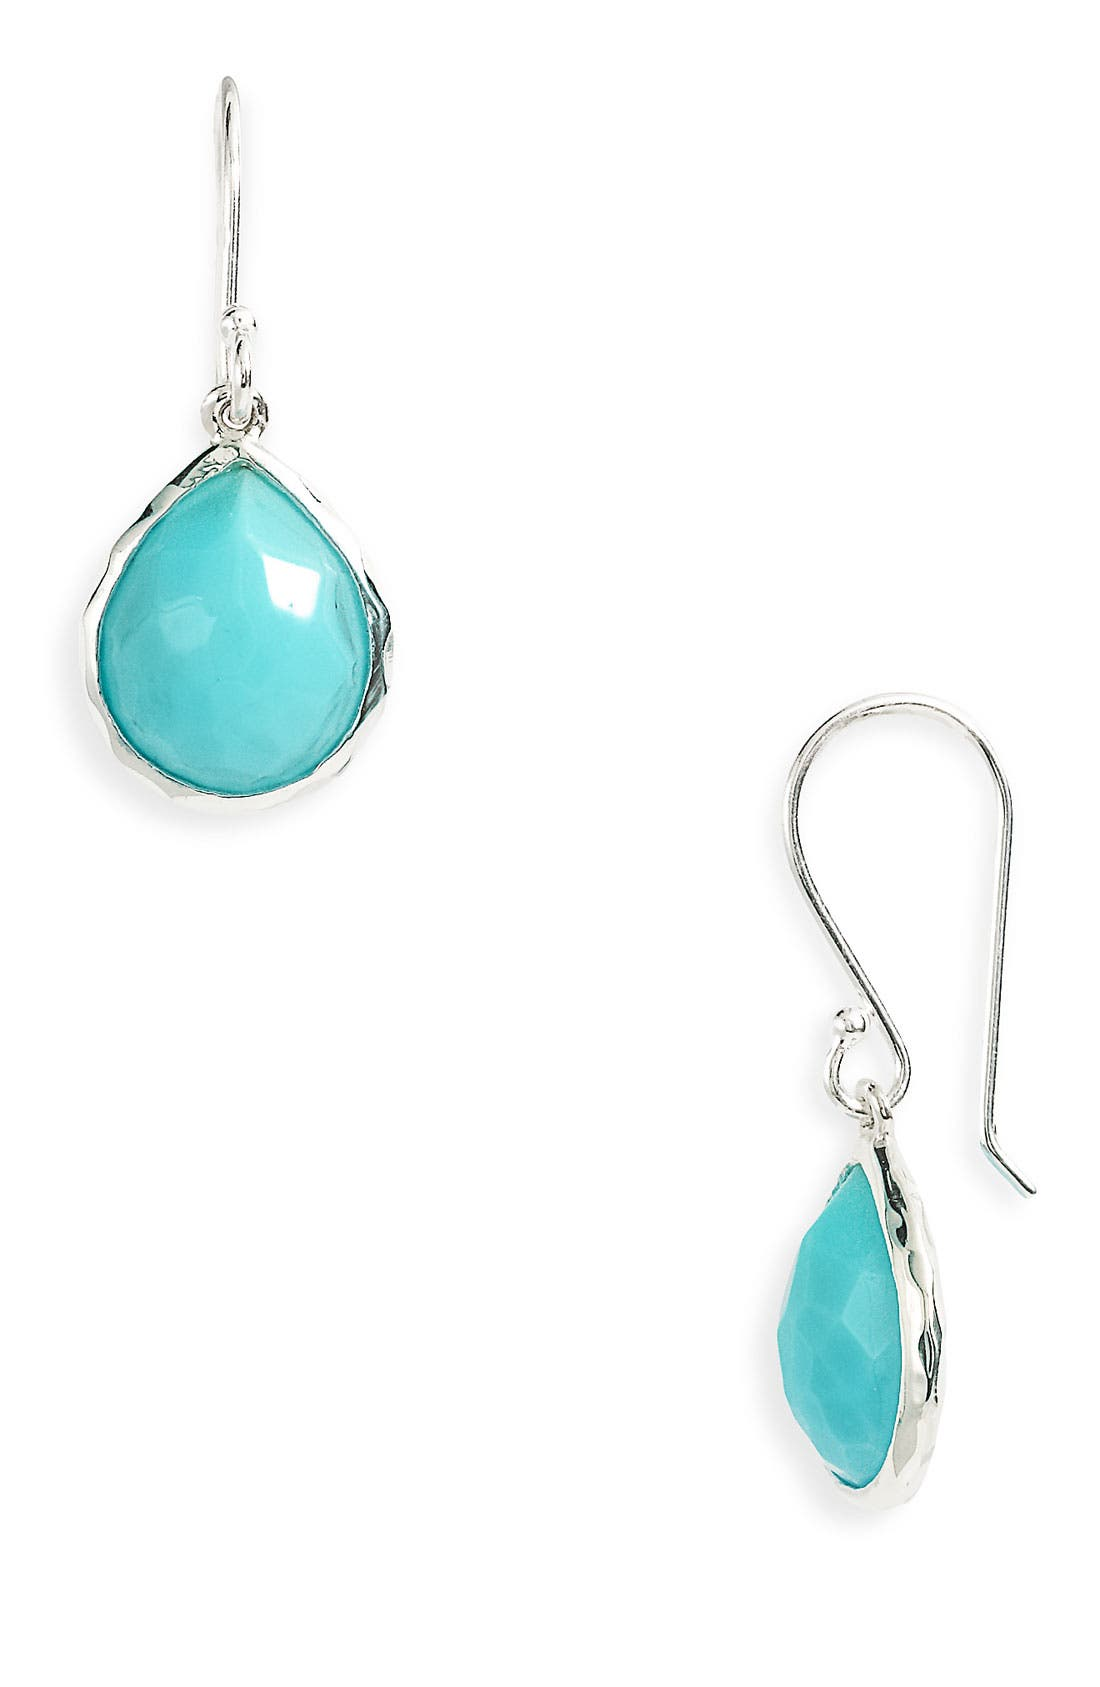 IPPOLITA, 'Rock Candy - Teeny Teardrop' Rosé Earrings, Main thumbnail 1, color, 040